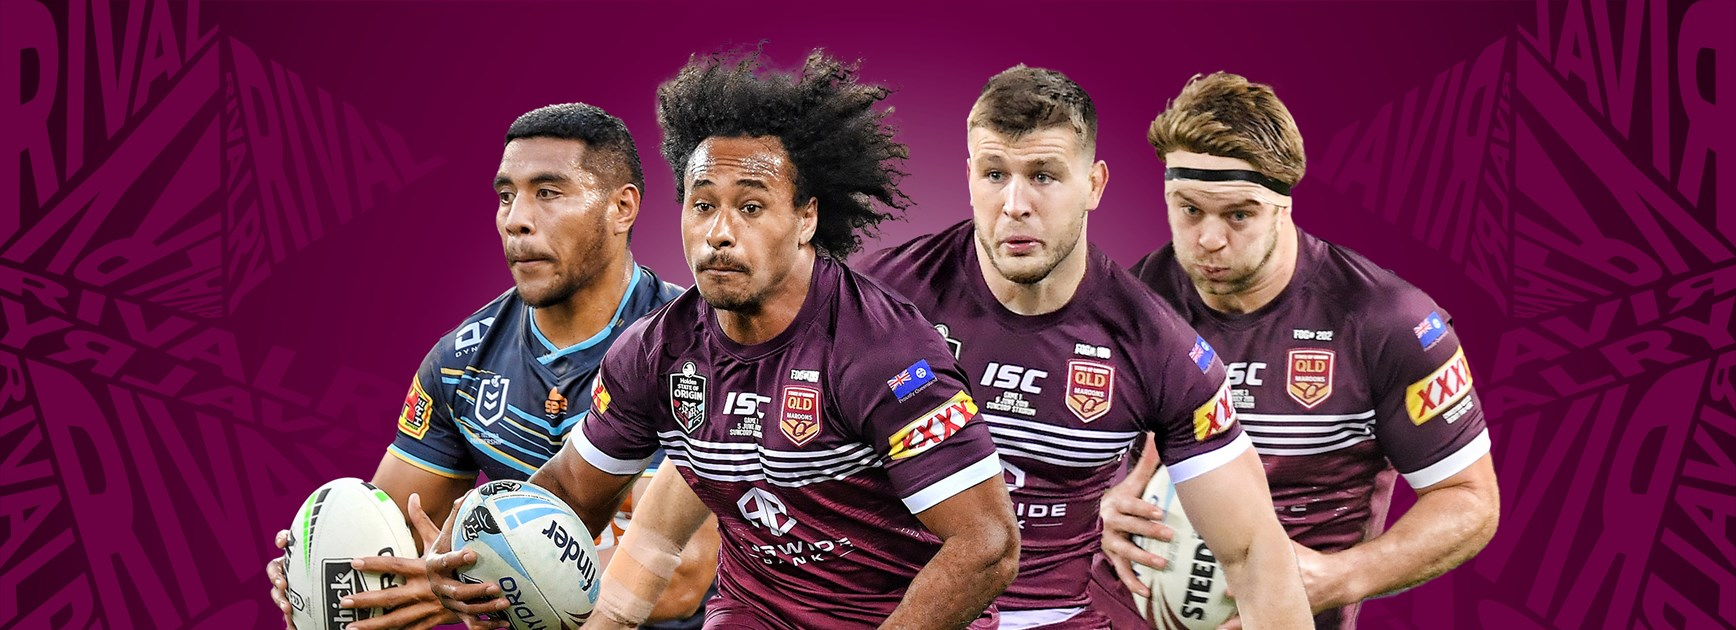 Ranking the Maroons forwards candidates for Origin 2020